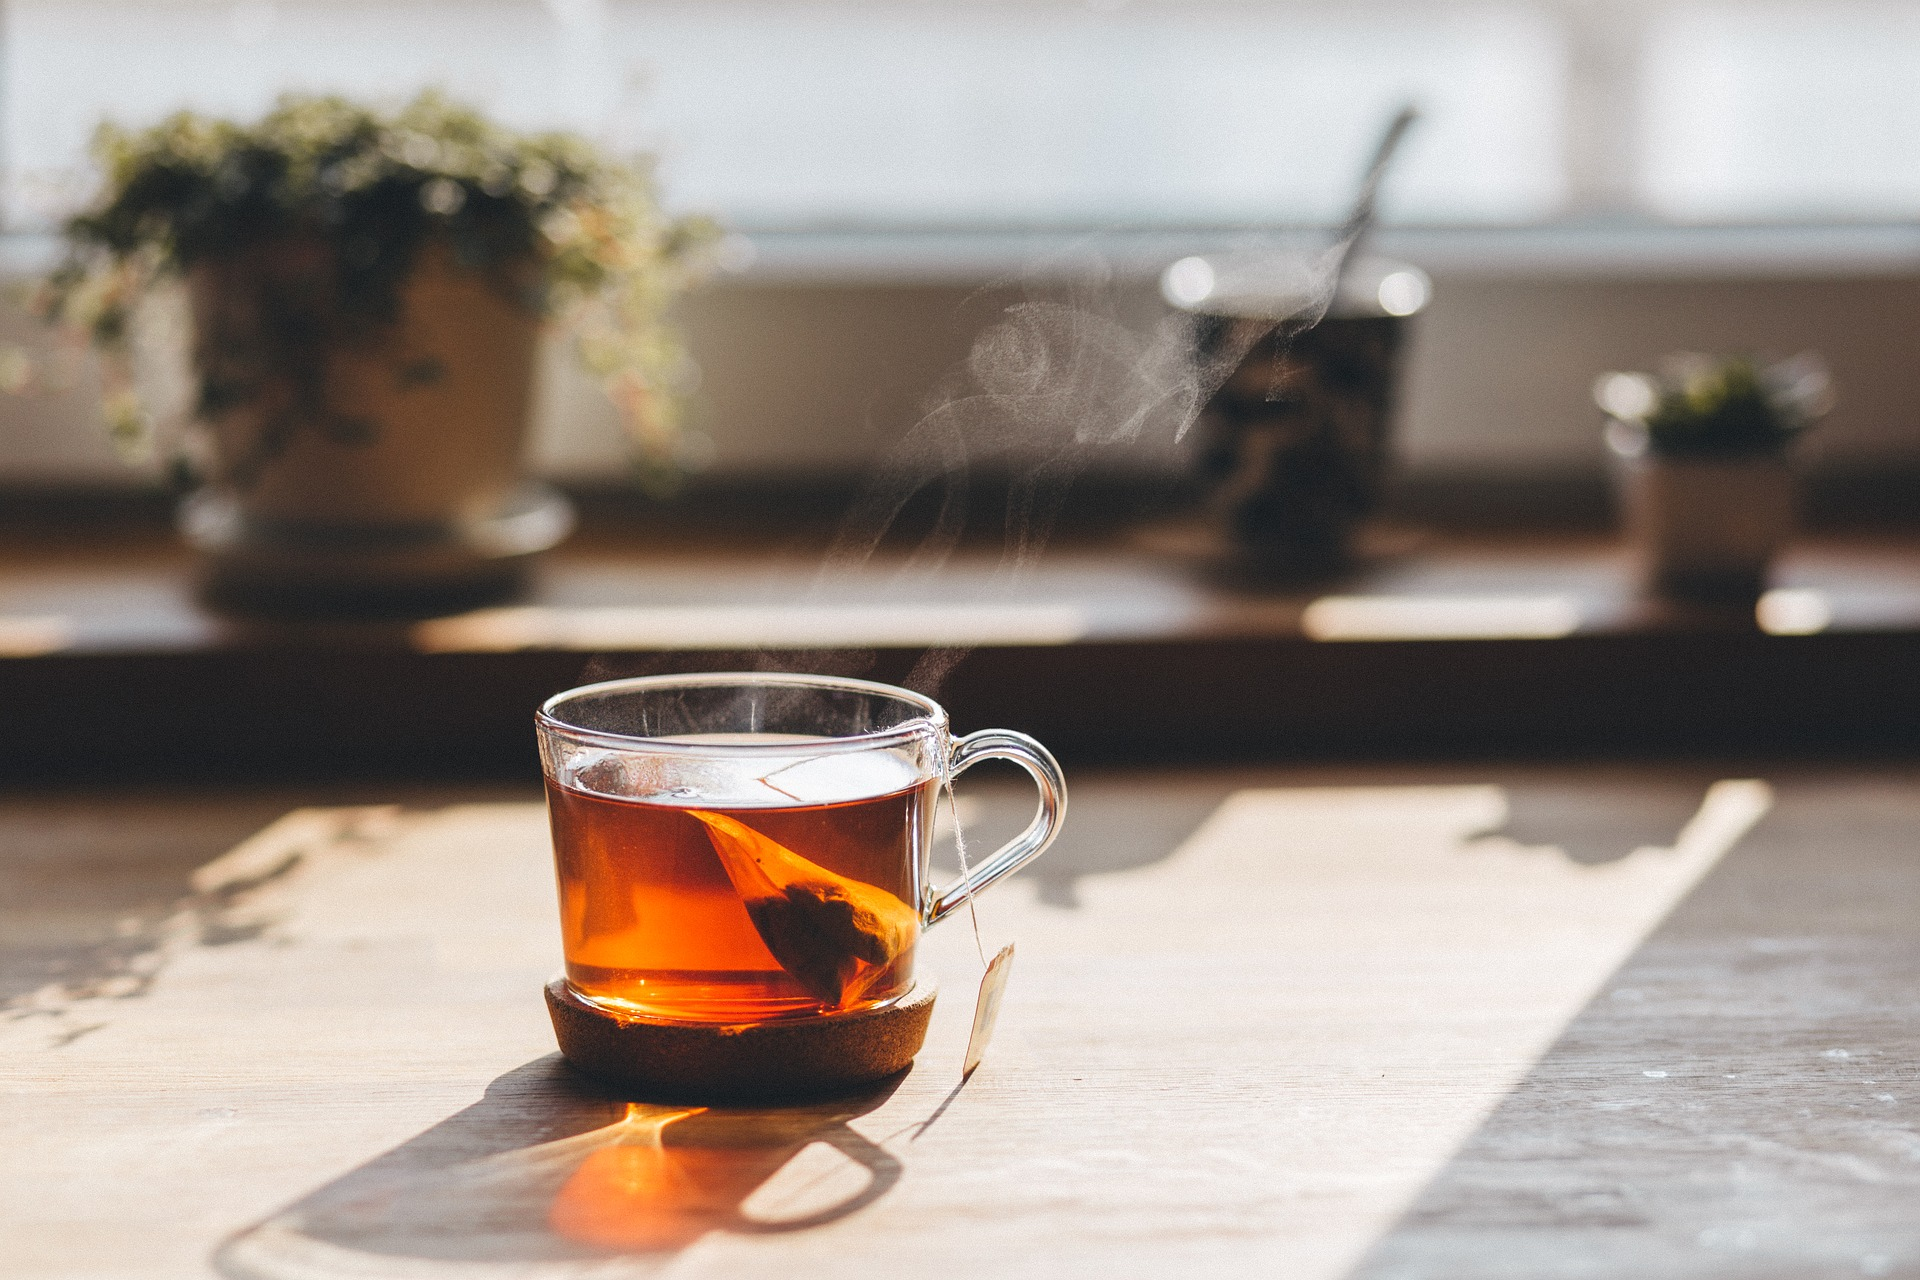 Hot tea in clear mug on kitchen table in front of window sill with flower pots